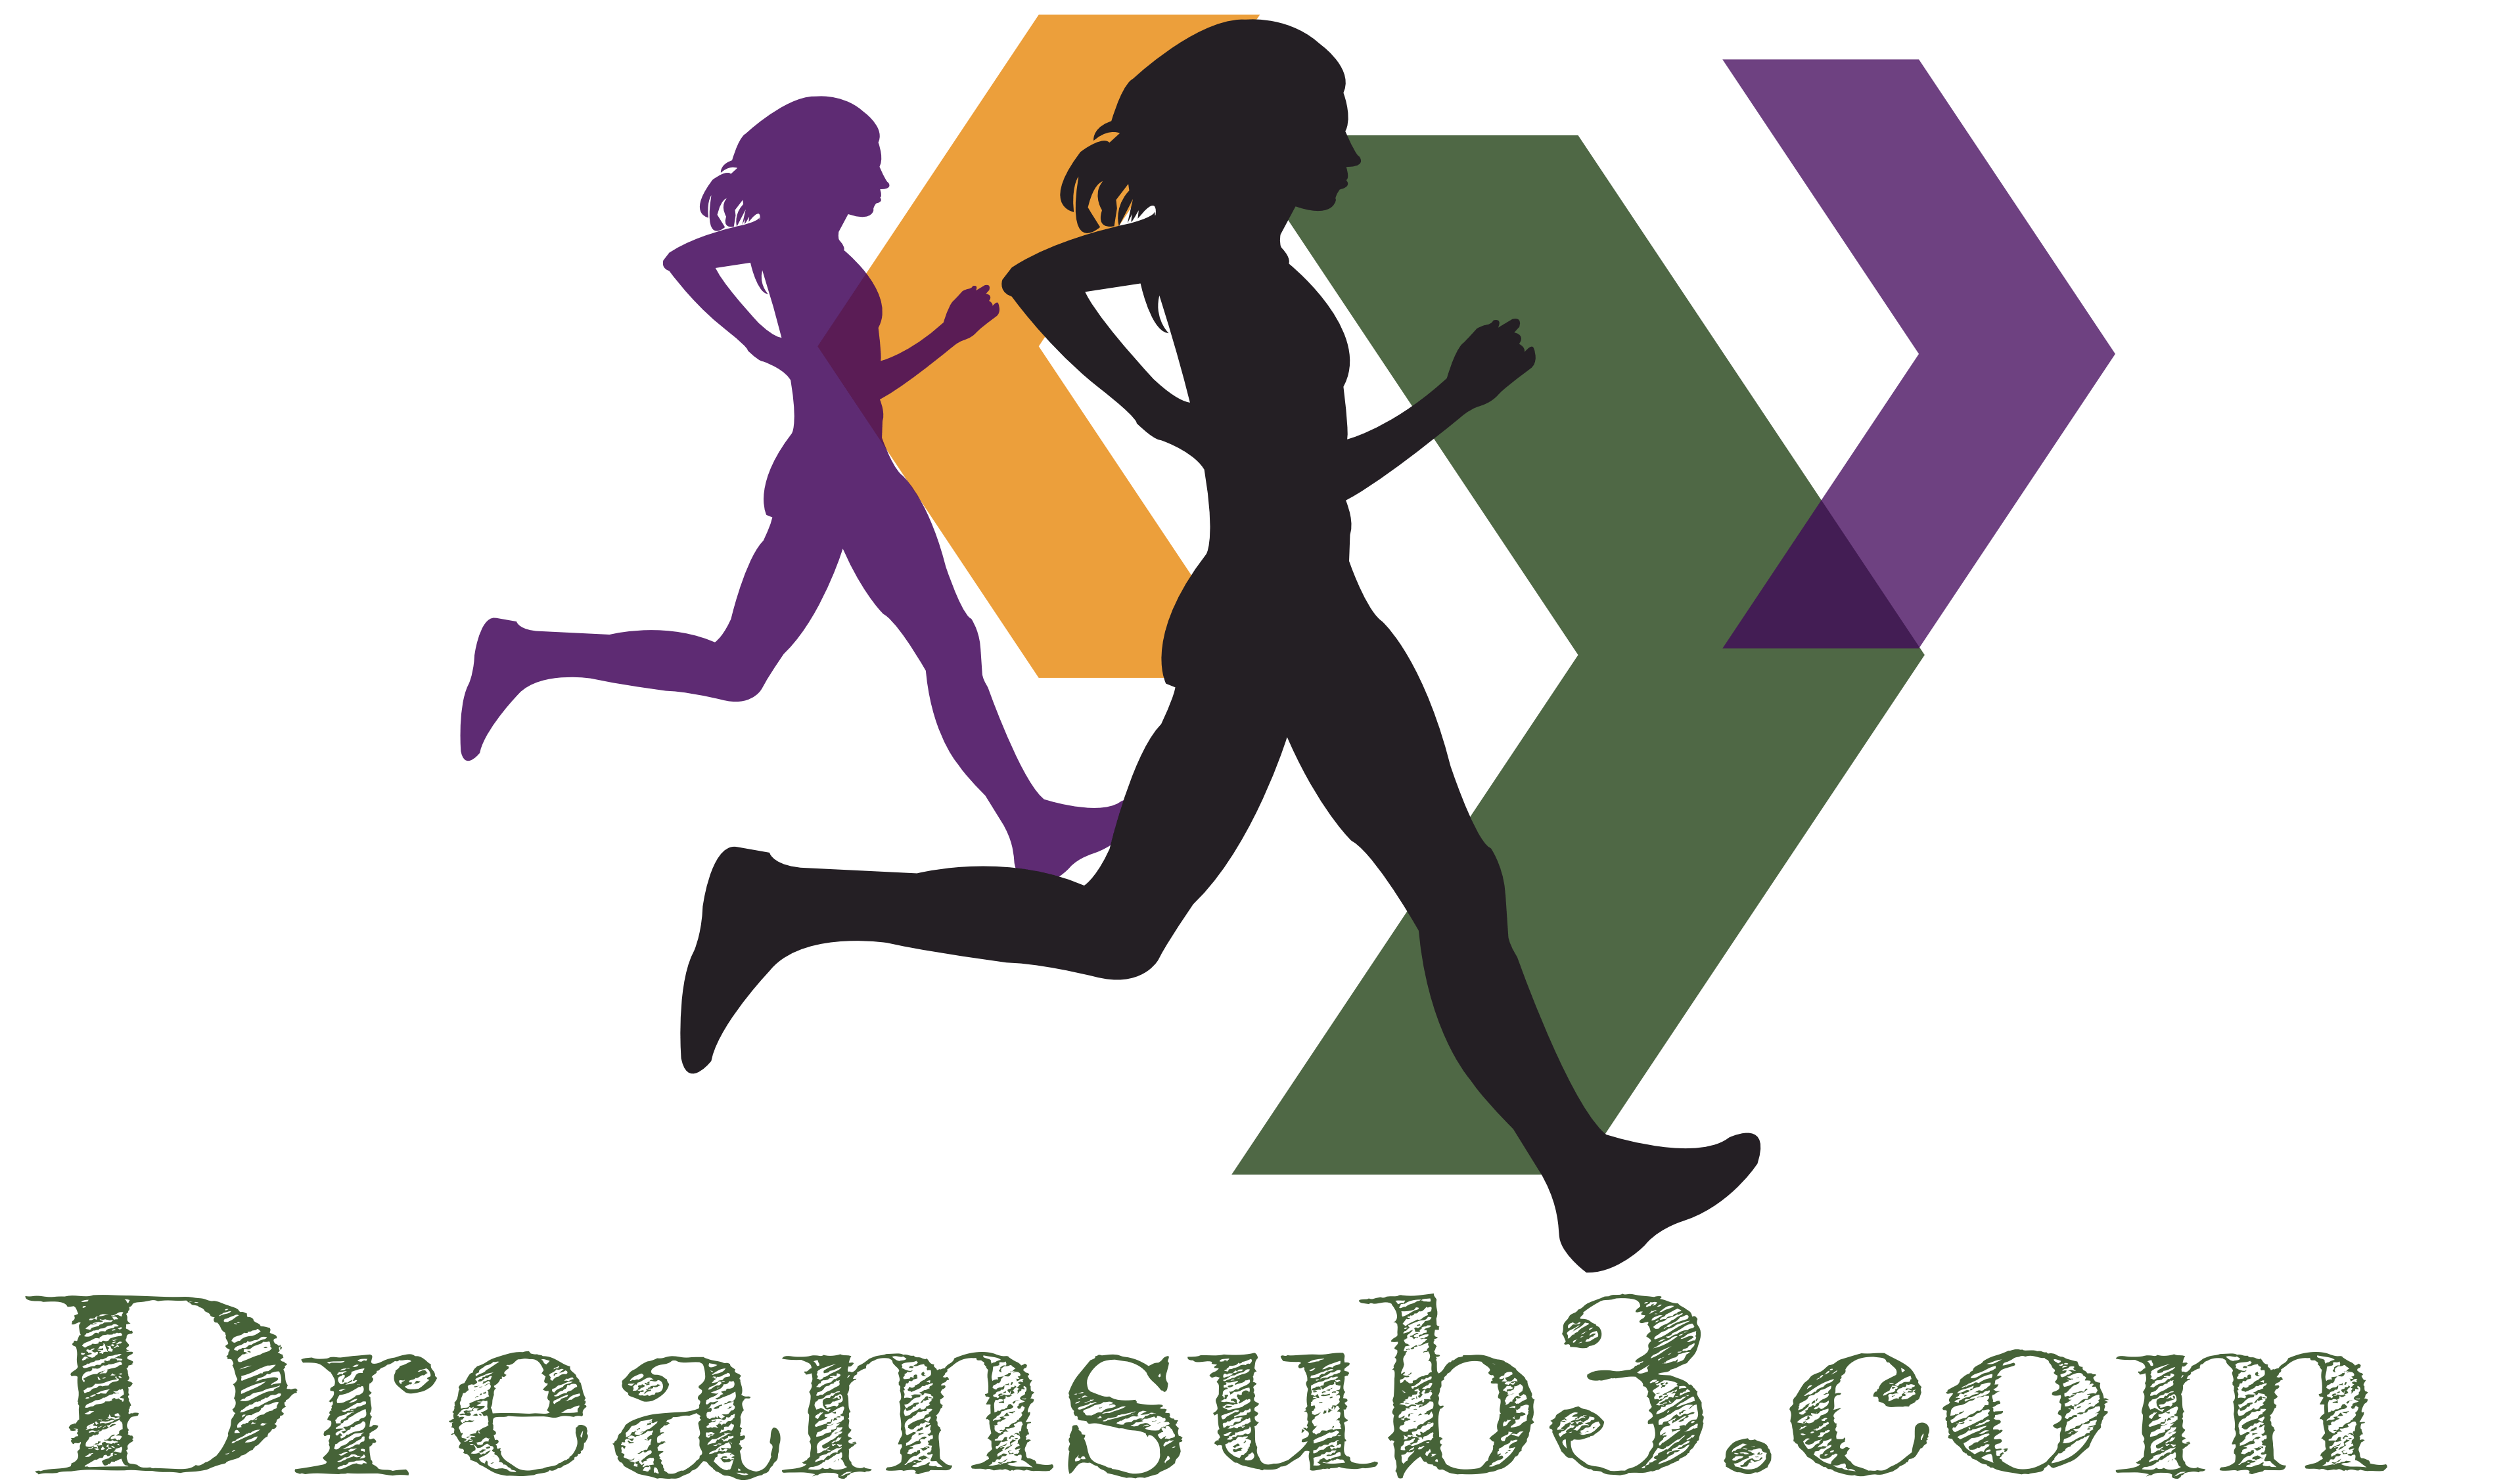 Runner clipart cardio exercise. Health benefits of running